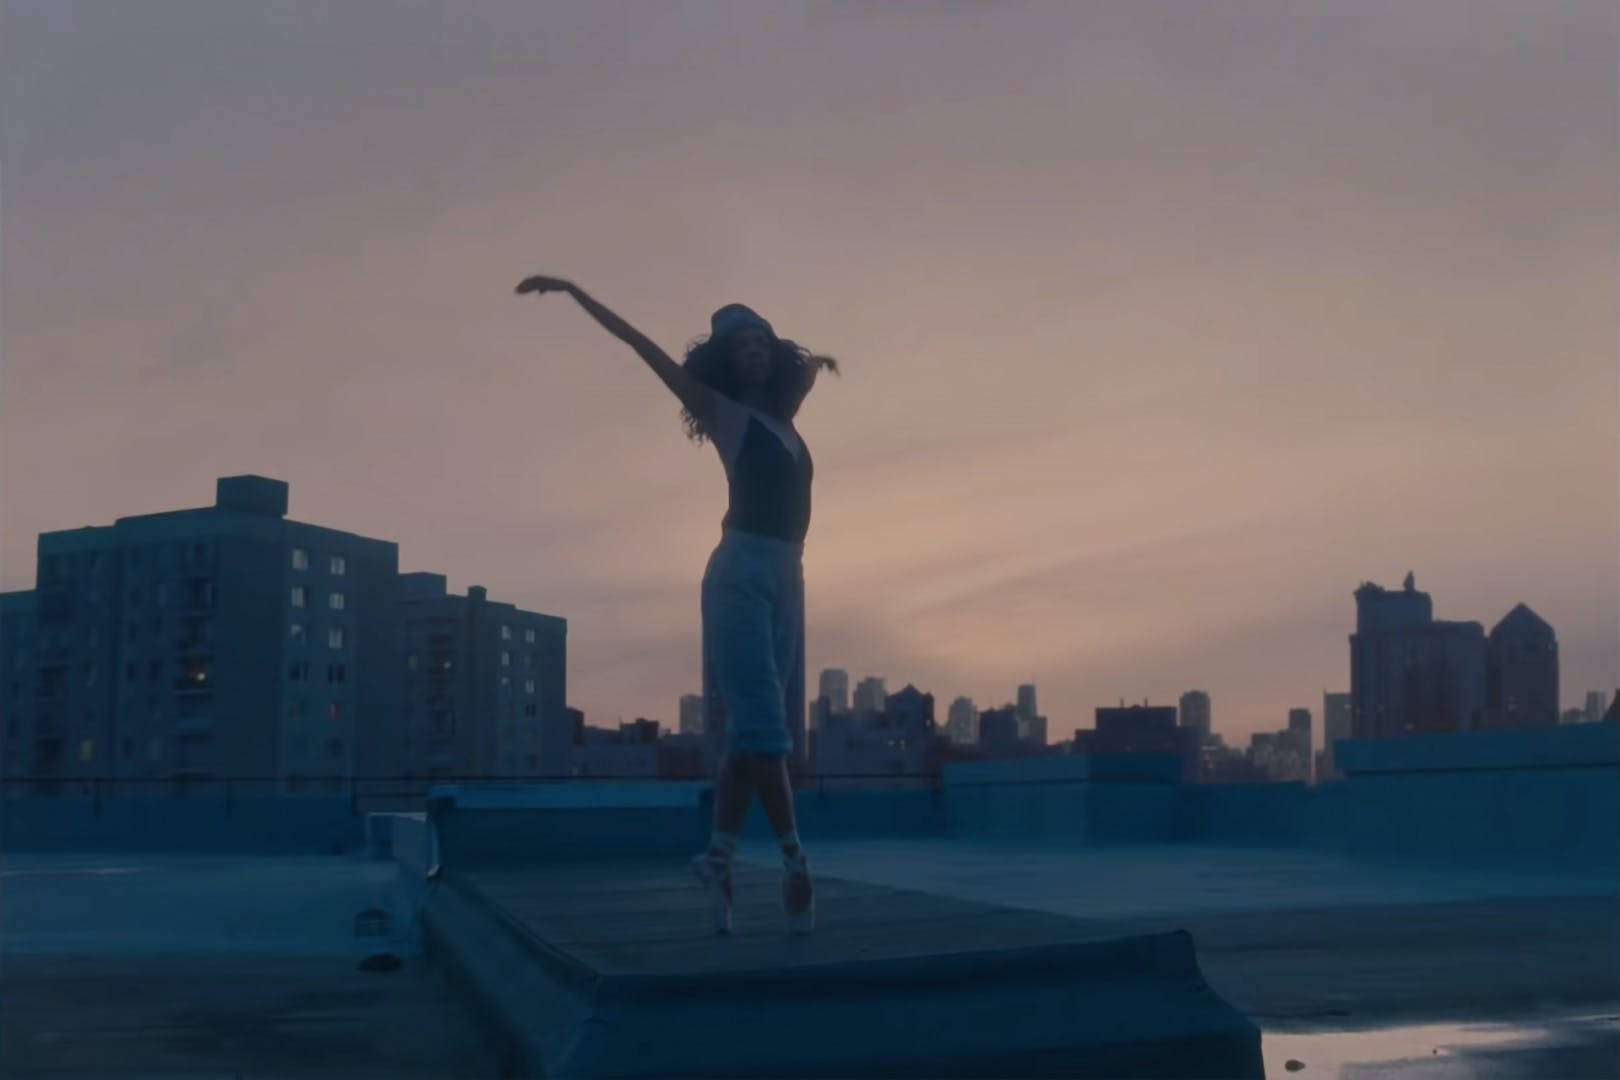 Ballerina on a rooftop in Amazon Christmas ad